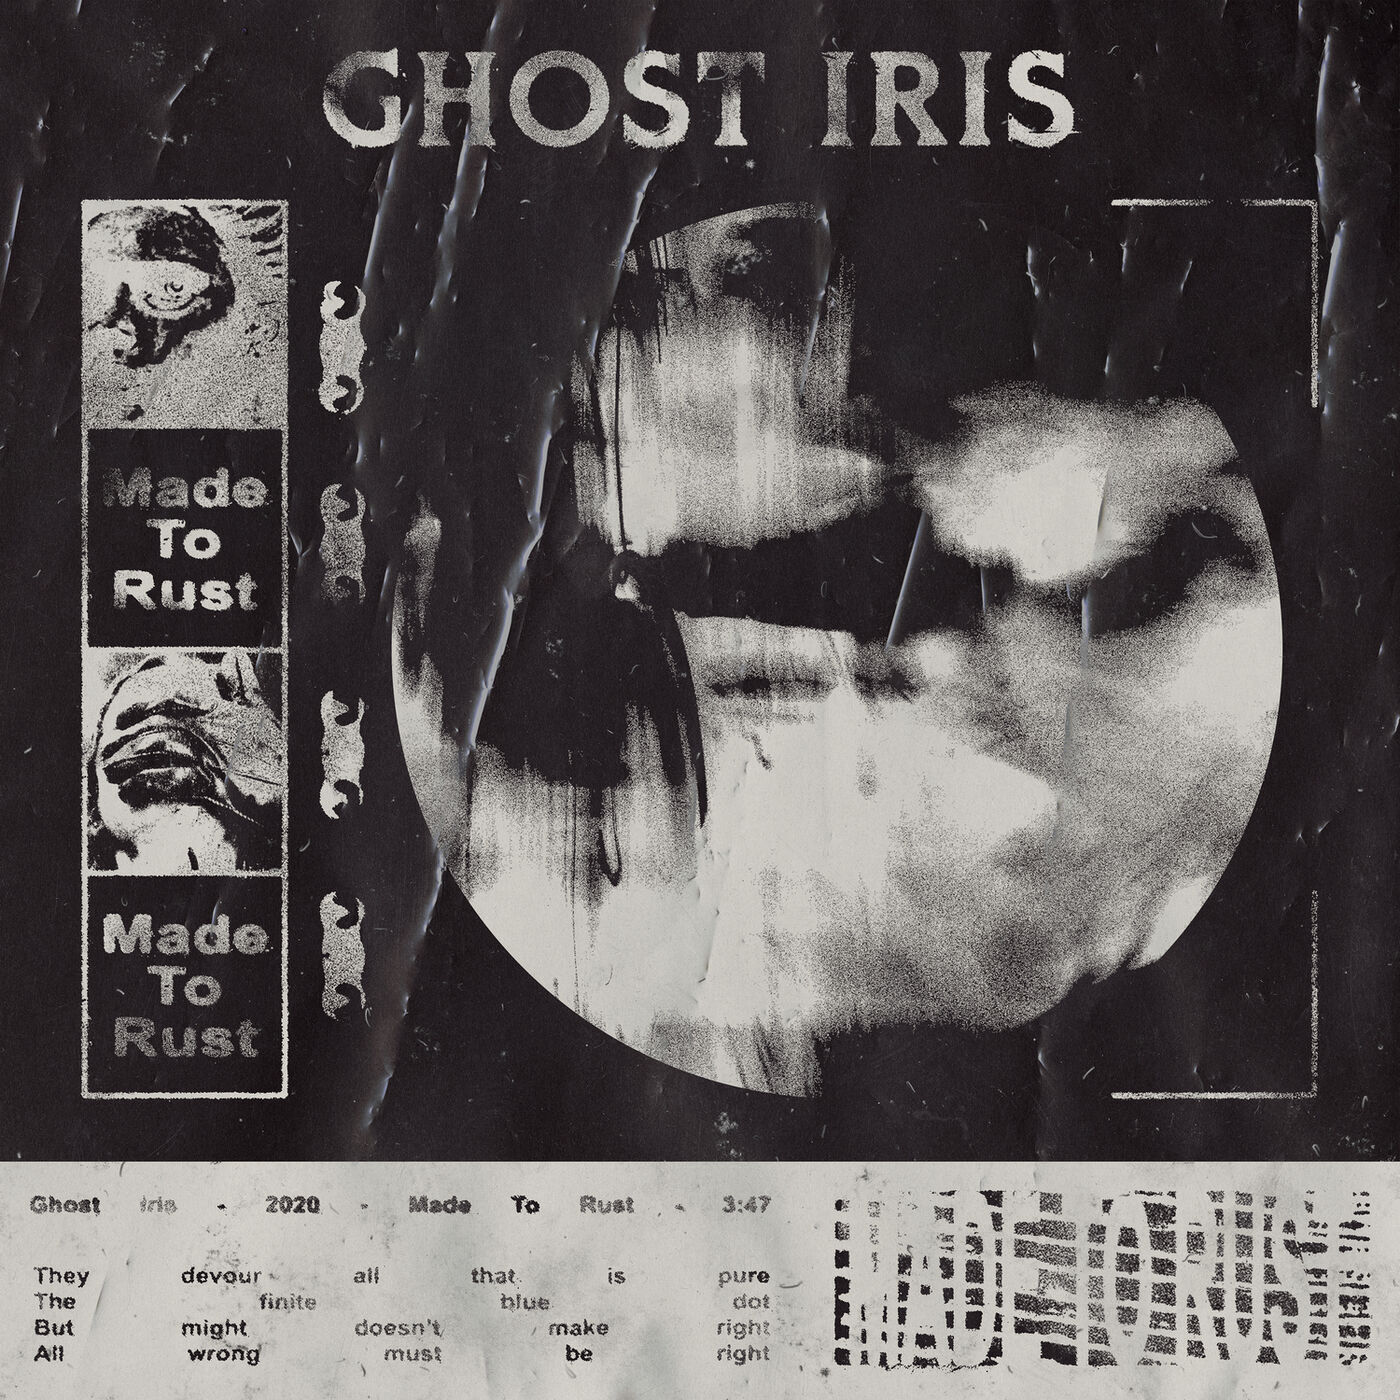 Ghost Iris - Made to Rust [single] (2020)